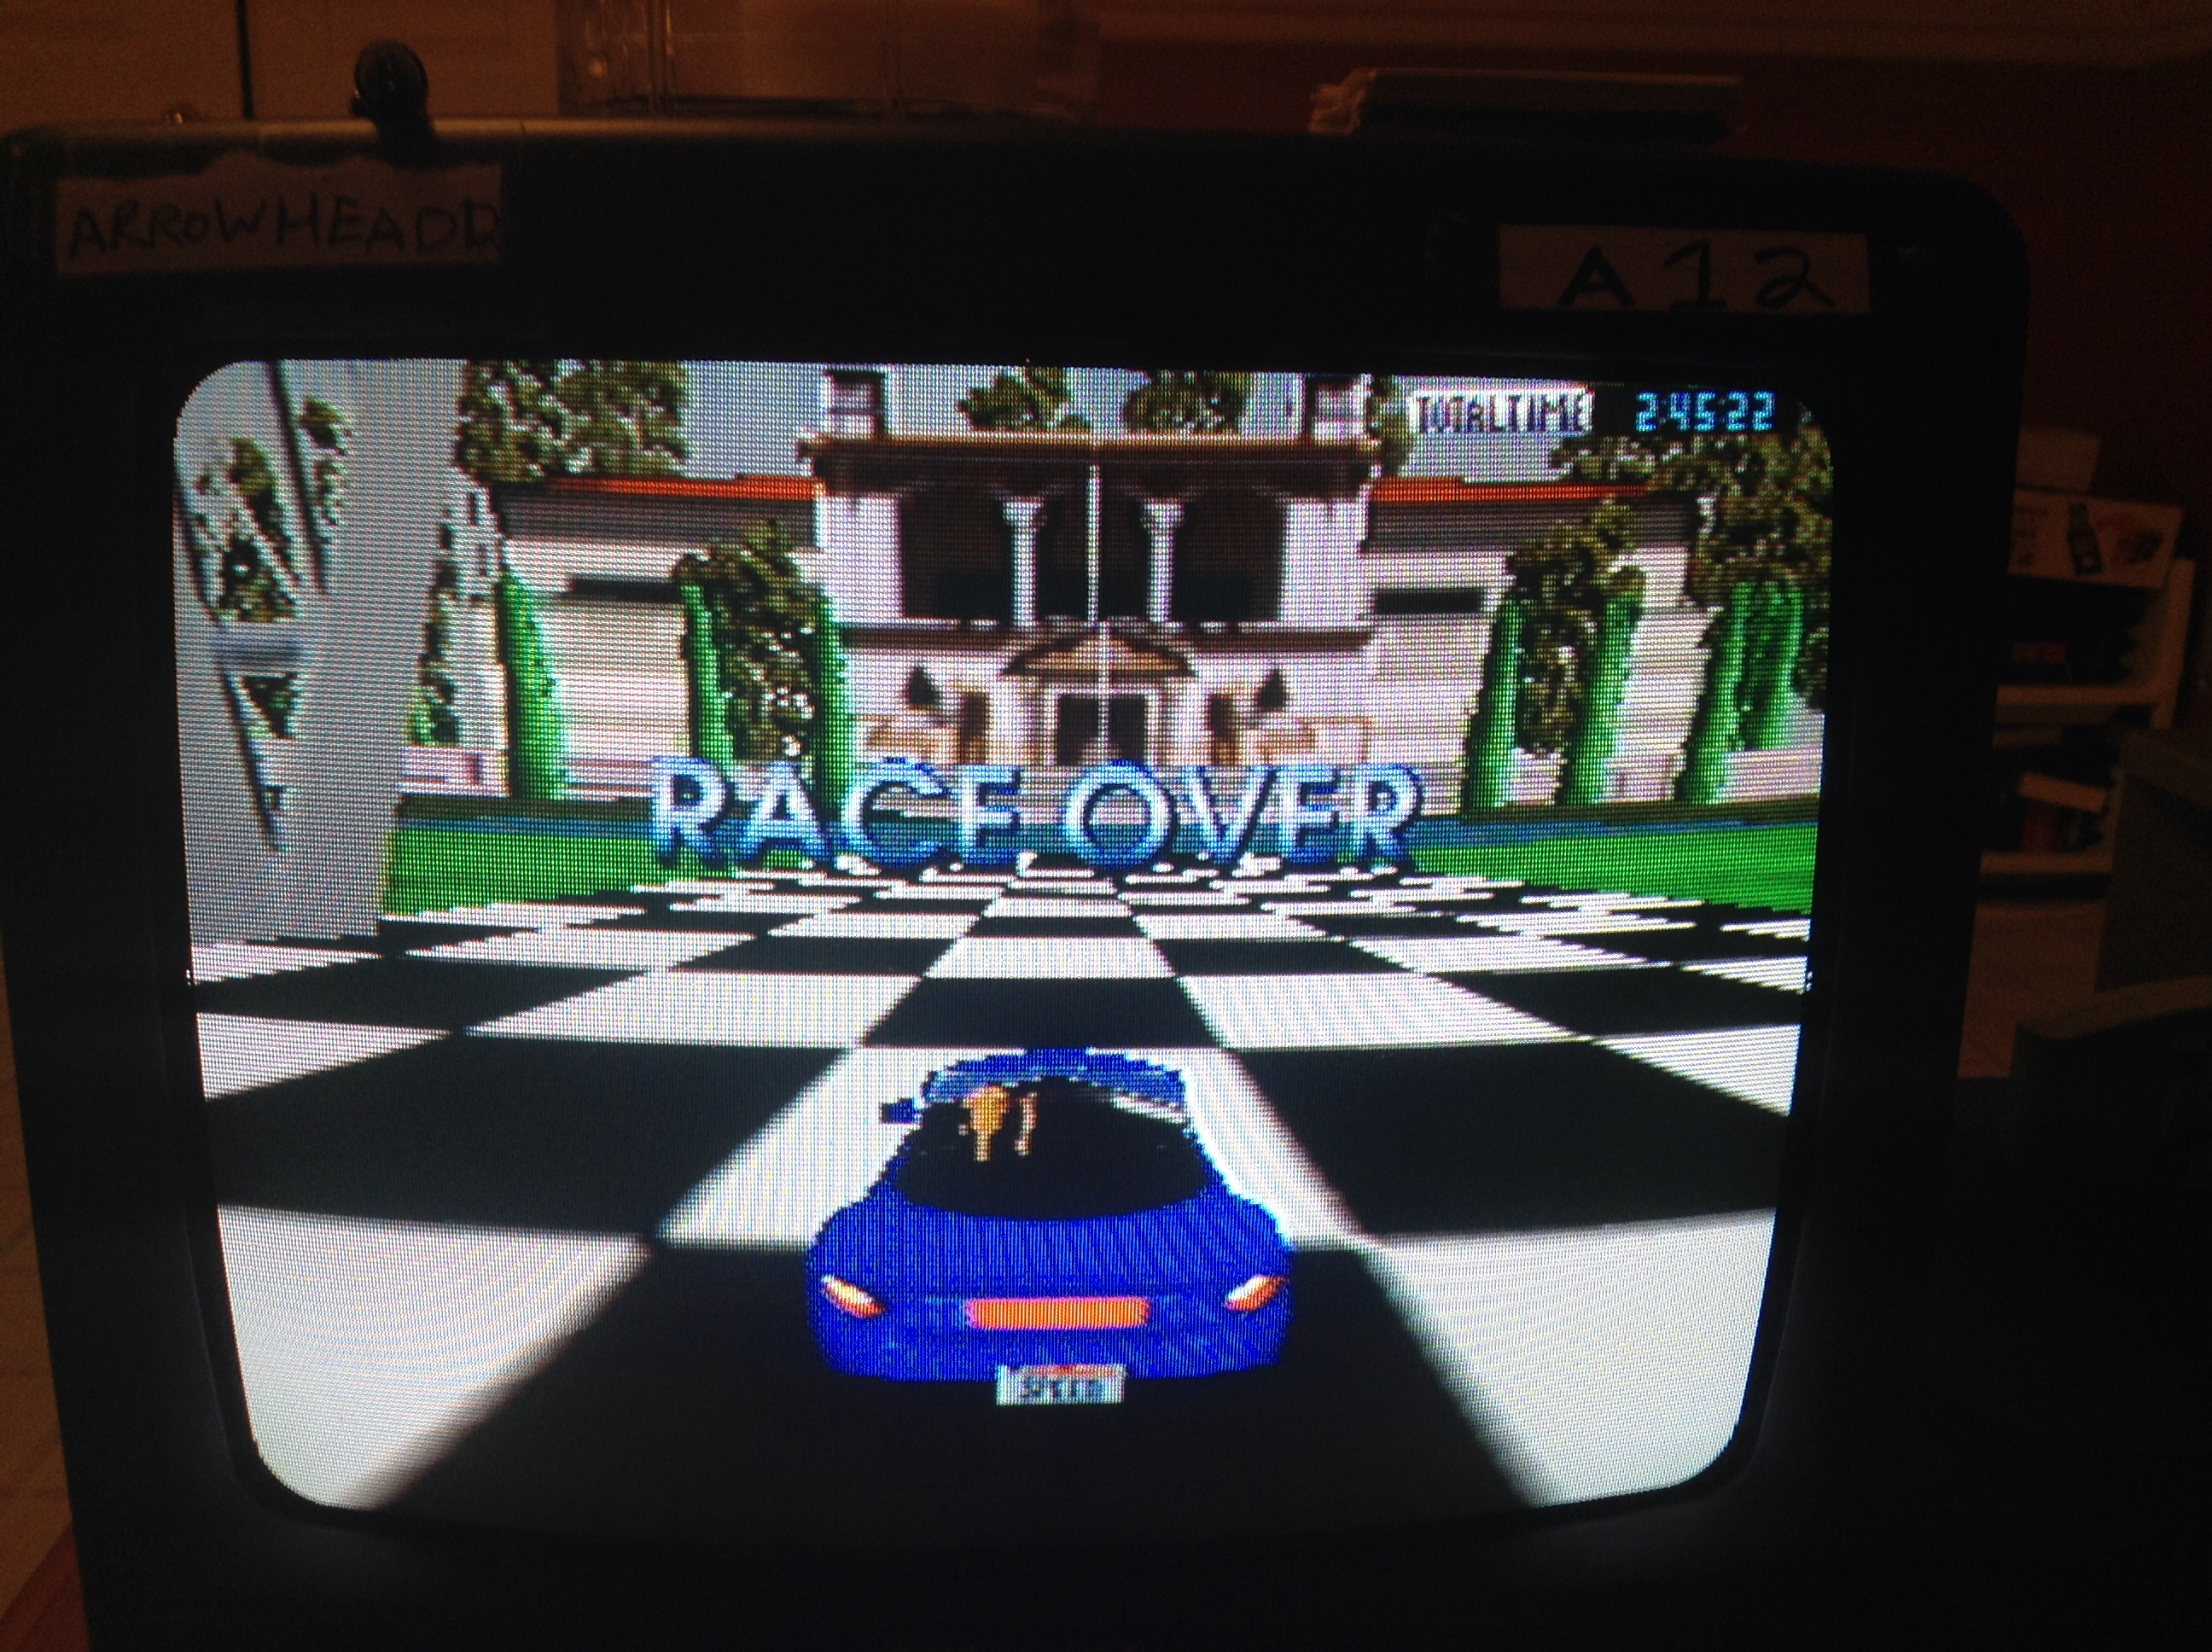 California Speed: Practice [Highway 1] time of 0:02:45.22